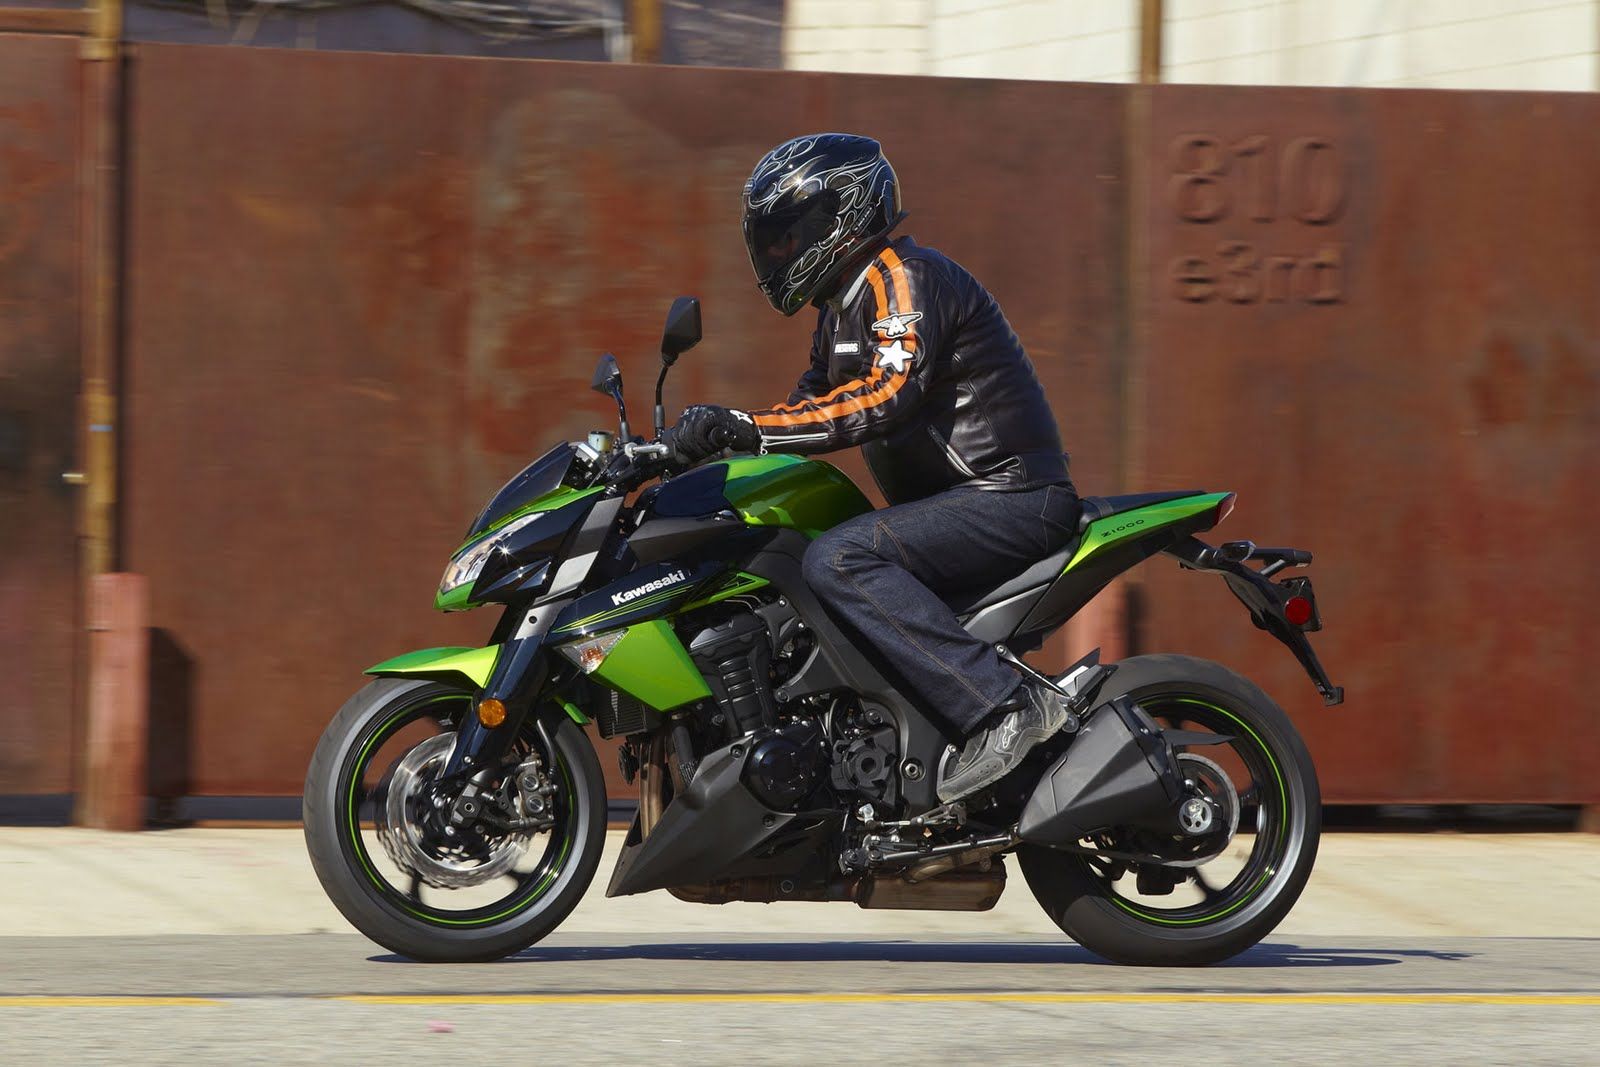 2011 kawasaki Z1000 Specs And Pictures - Motorbike Reviews